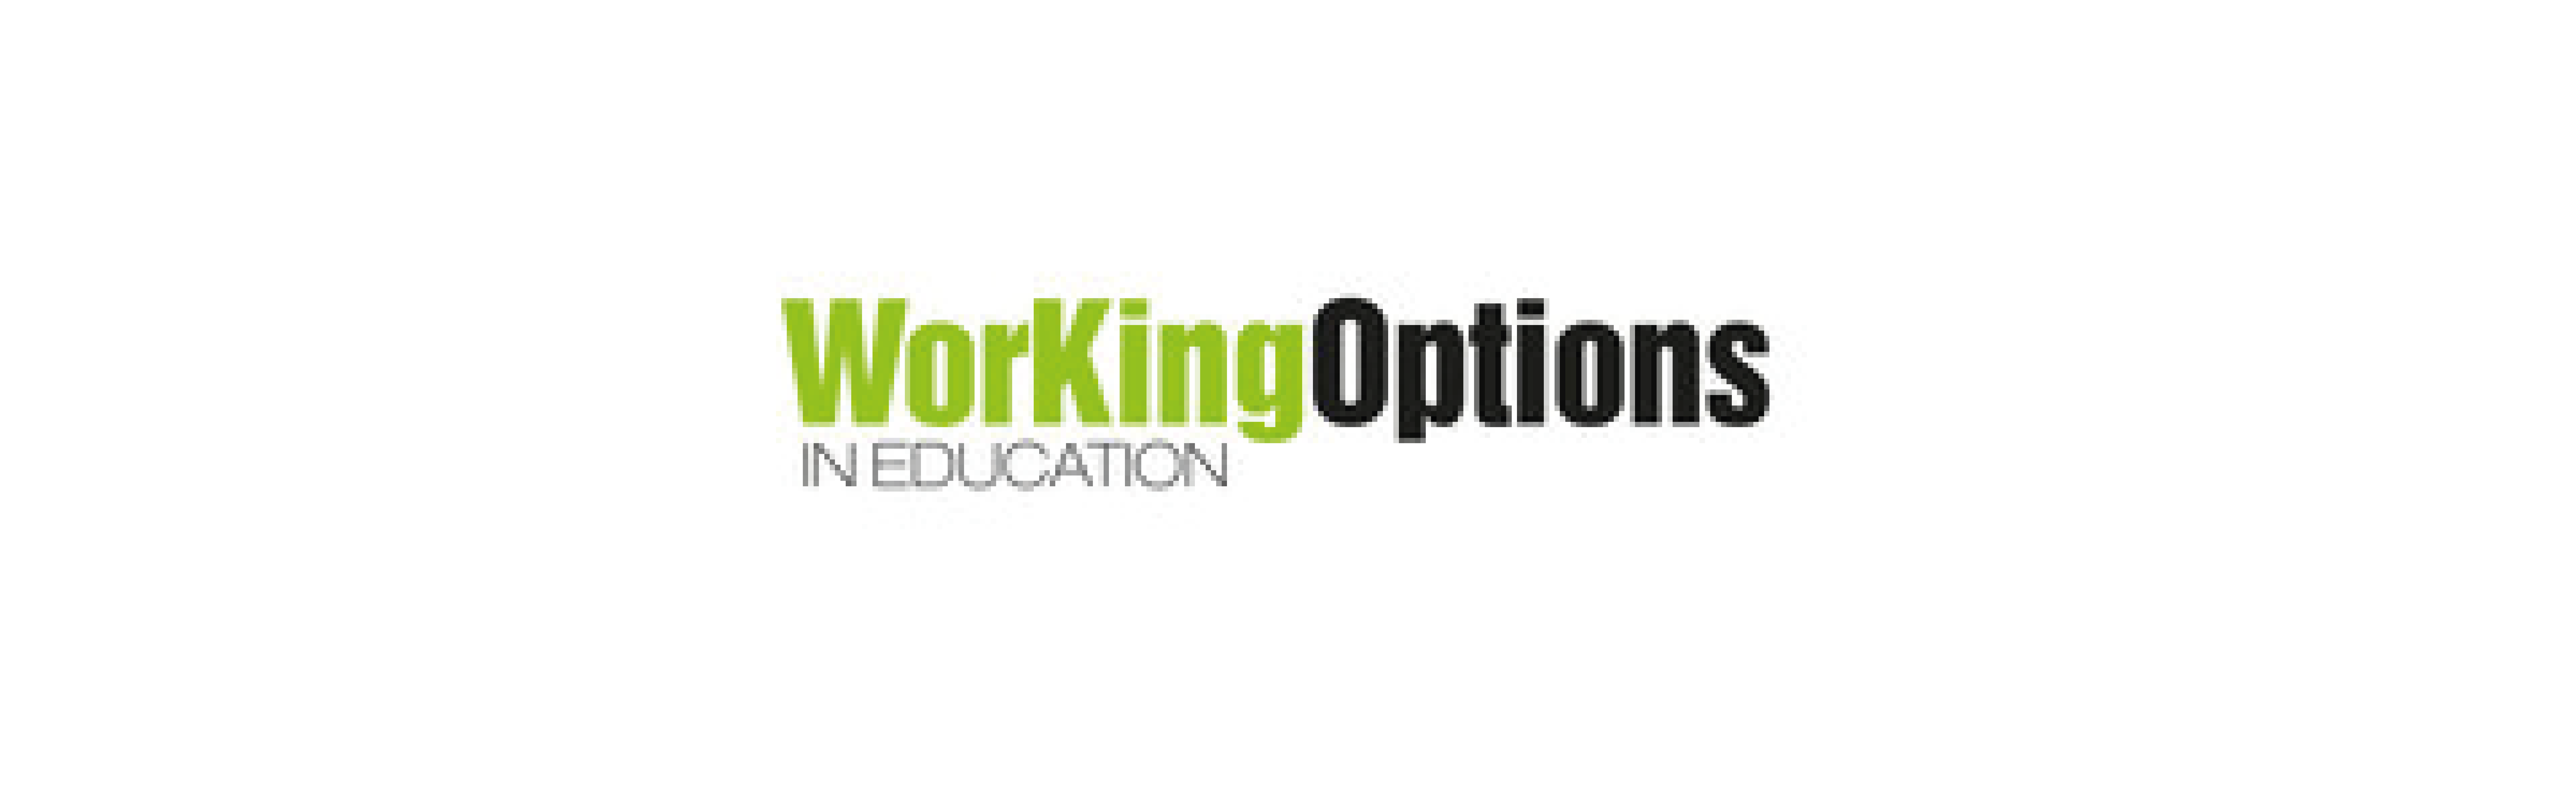 Working Options in Education